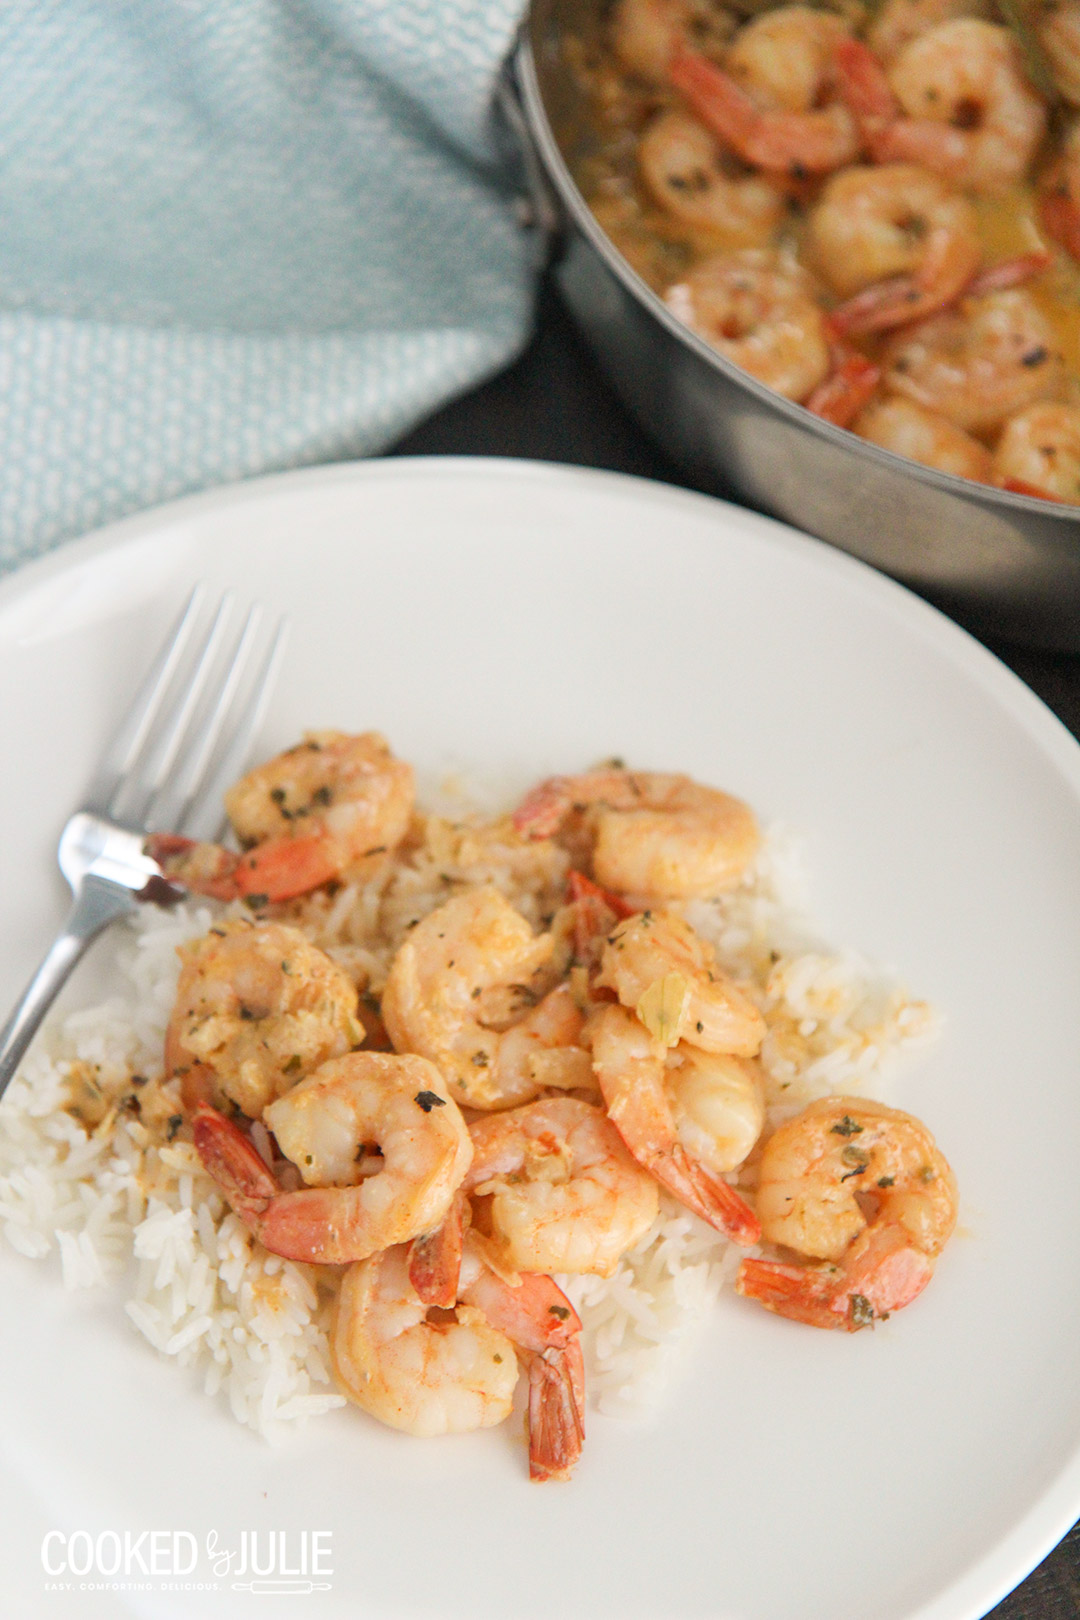 shrimp over white rice on a white plate with a fork